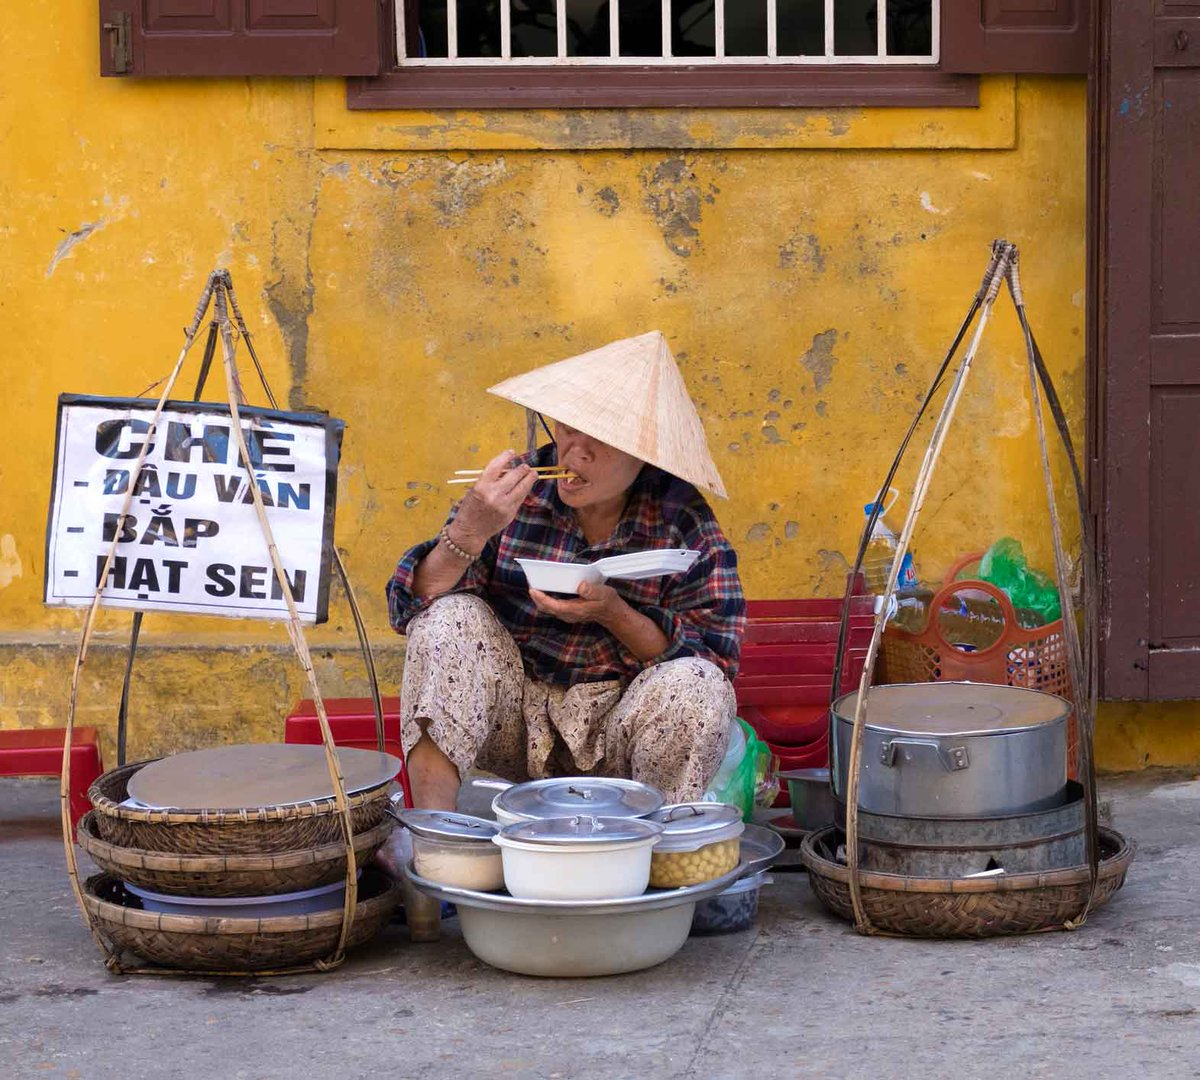 Vietnam? More like VietNOM! For what to eat and where to find it, check our blog out - https://t.co/ZVkS2ZRV52 #Vietnam #Food #Foodies #eatwell #vietnamfood https://t.co/McoWZrhzC9